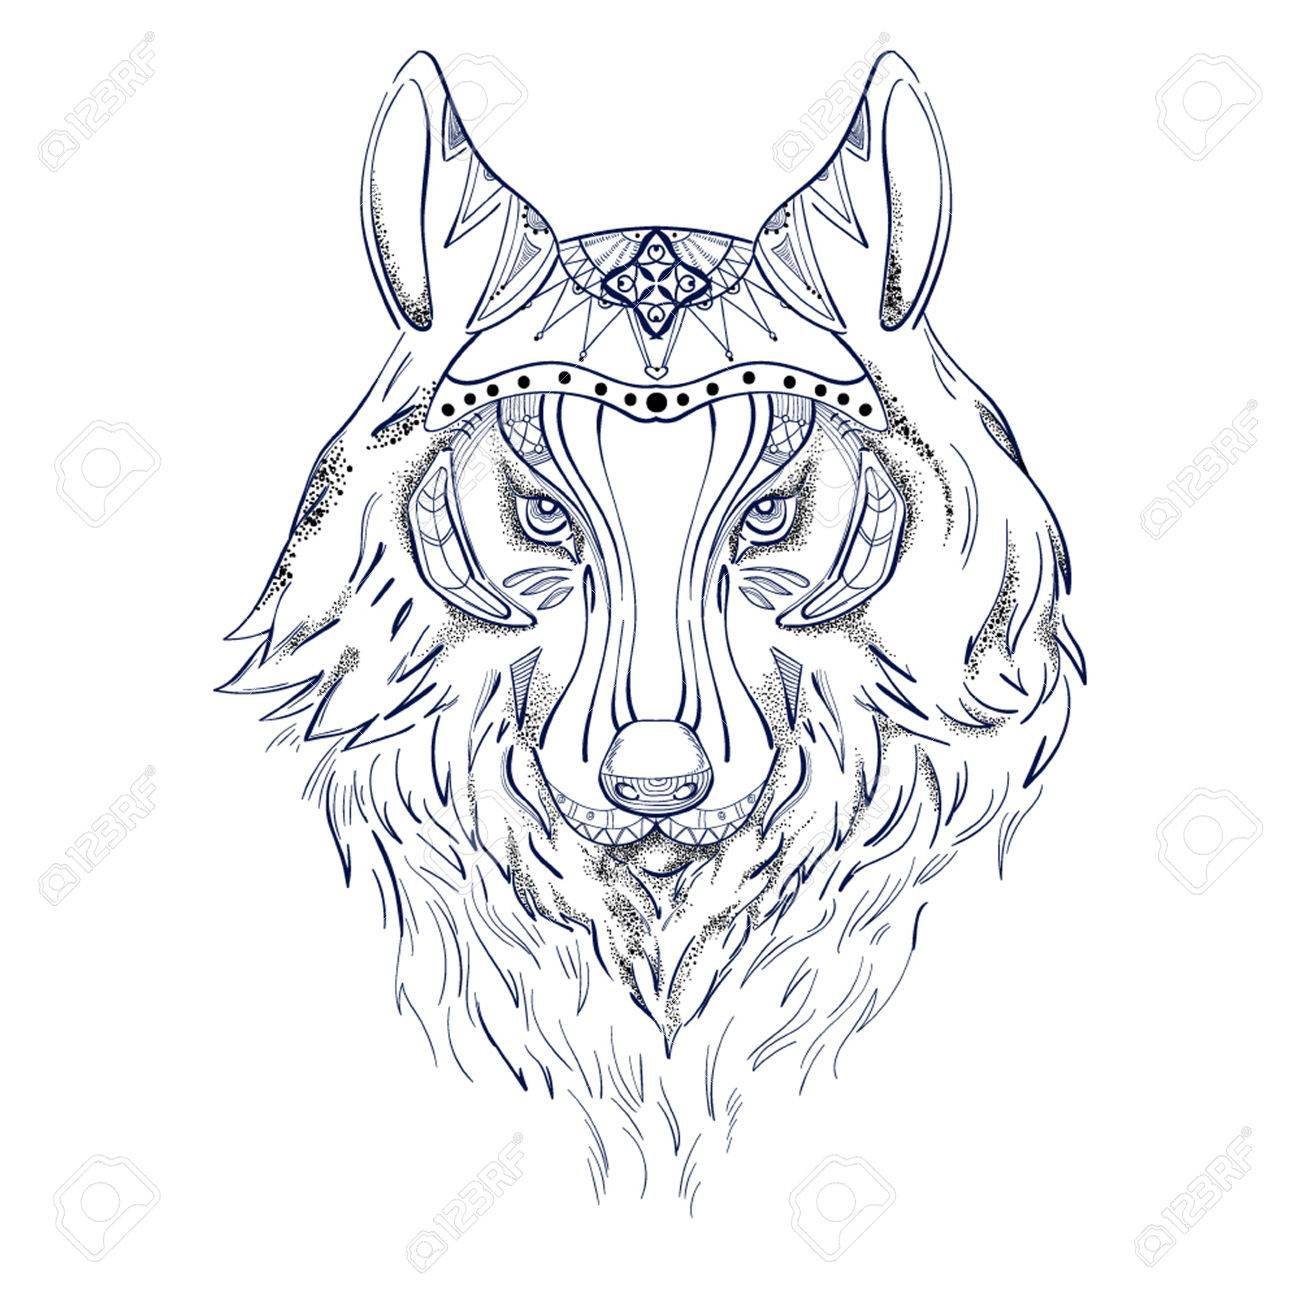 Wolf In Color For Tattoo Royalty Free Cliparts Vectors And Stock Illustration Image 69243299